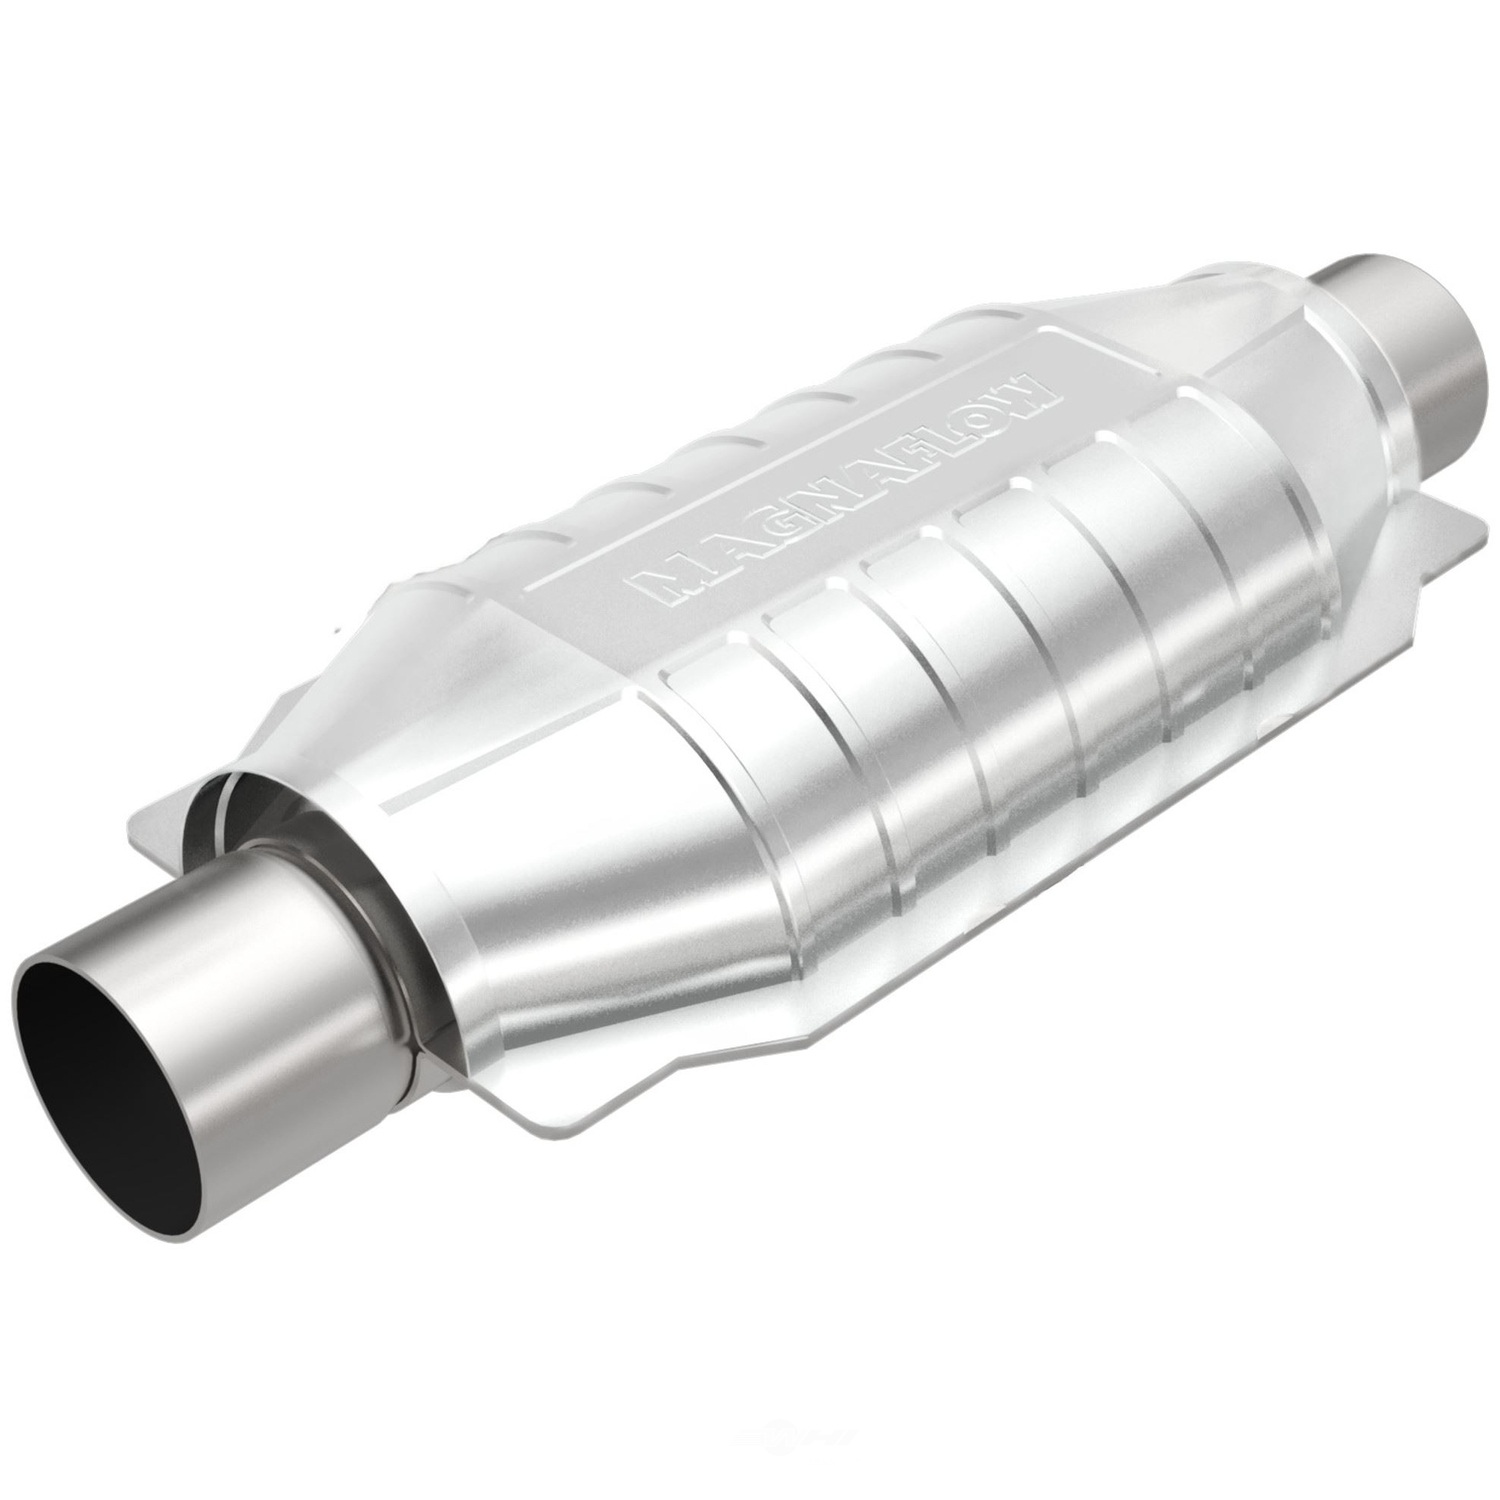 BREXHAUST 49 STATE CONVERTERS - BRExhaust Federal Universal Standard Load OBDII Catalytic Converter (Rear) - BSF 093-2030